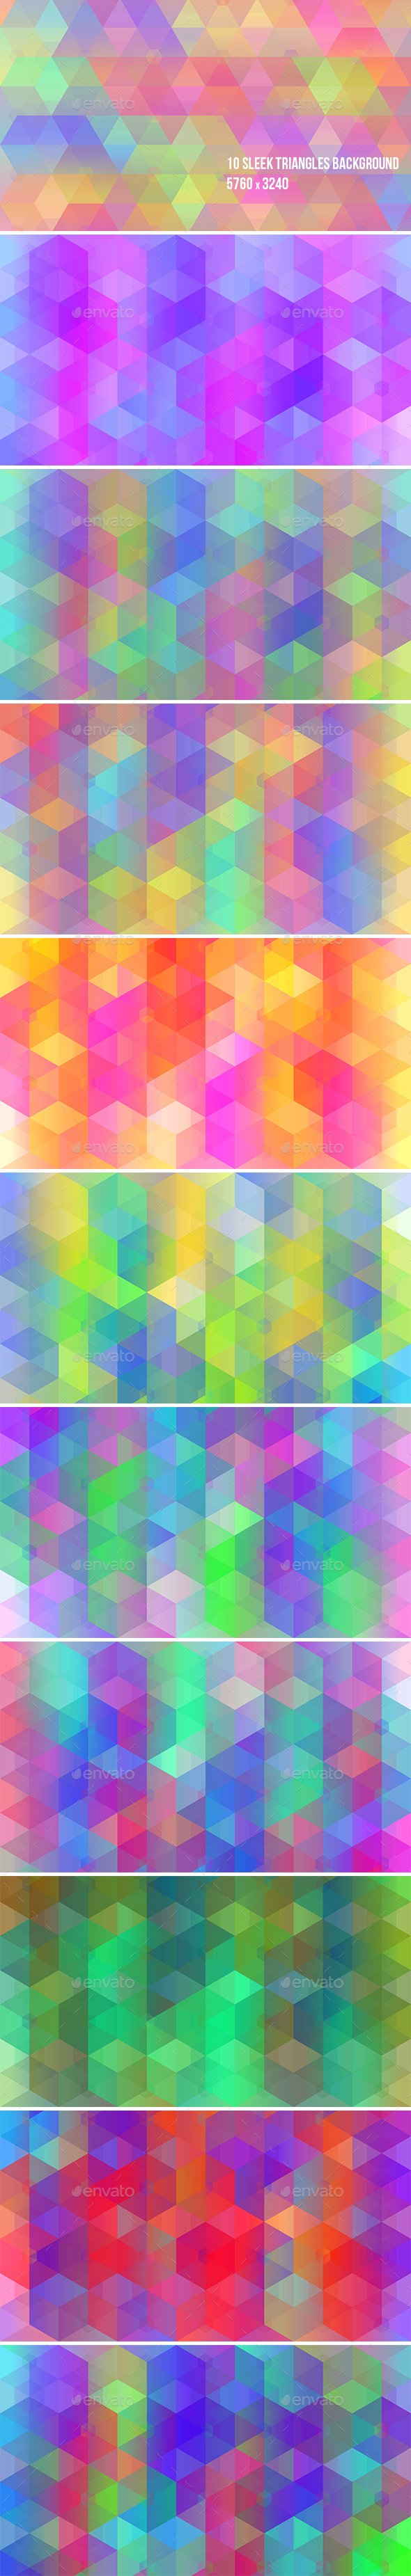 10 Sleek Triangles Backgrounds  - Abstract Backgrounds